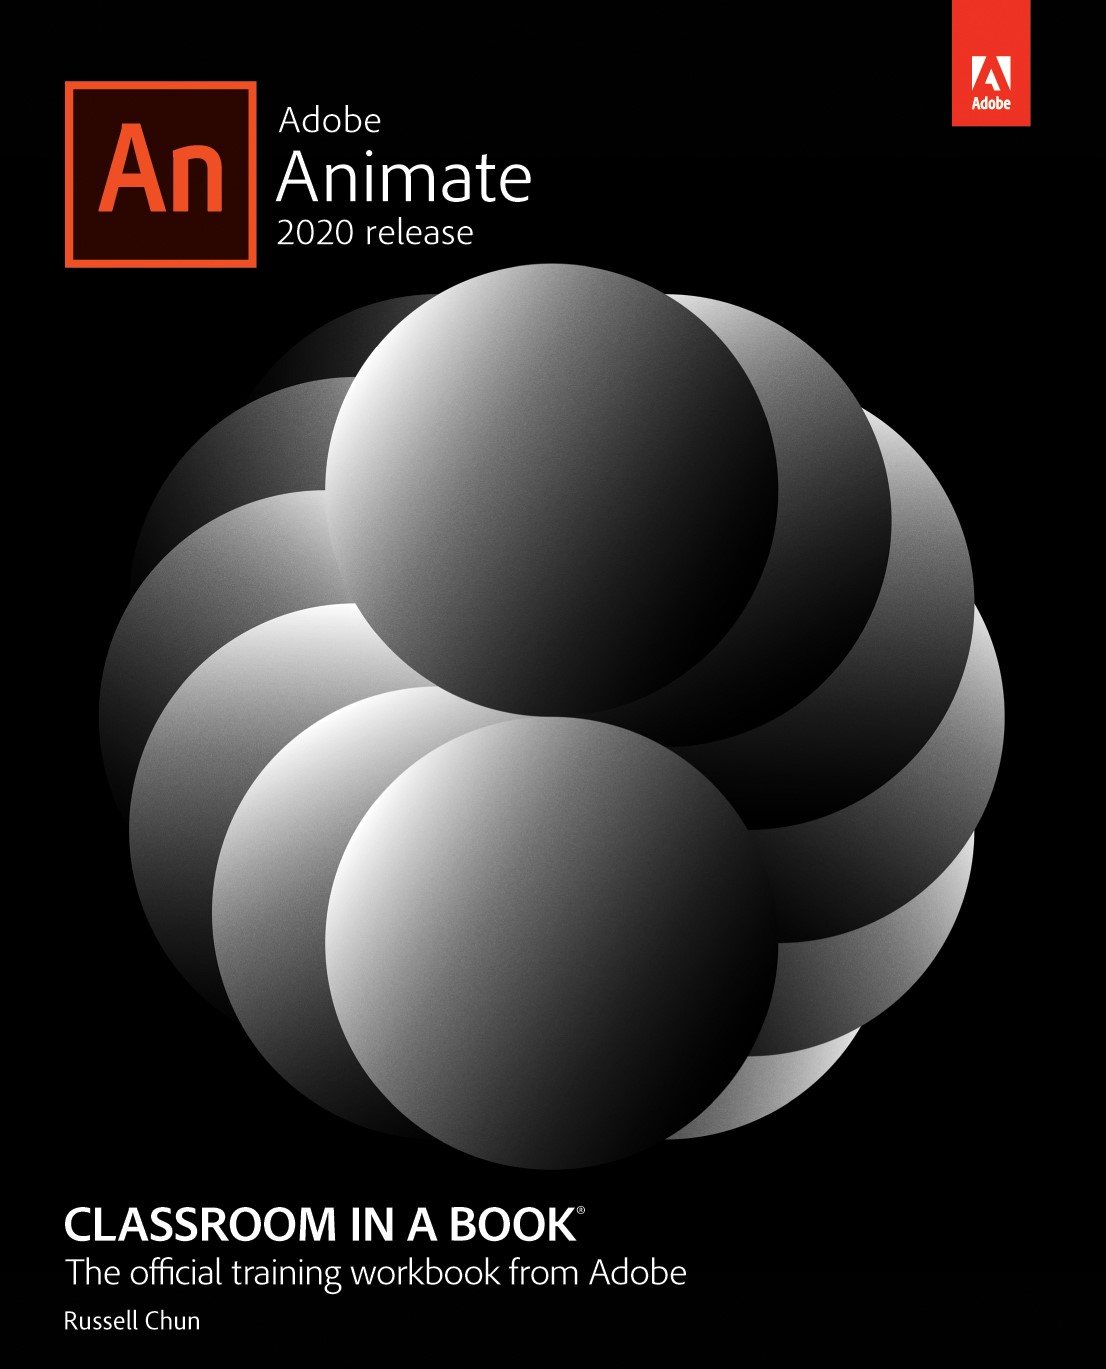 Adobe Animate Classroom in a Book (2020 Release)